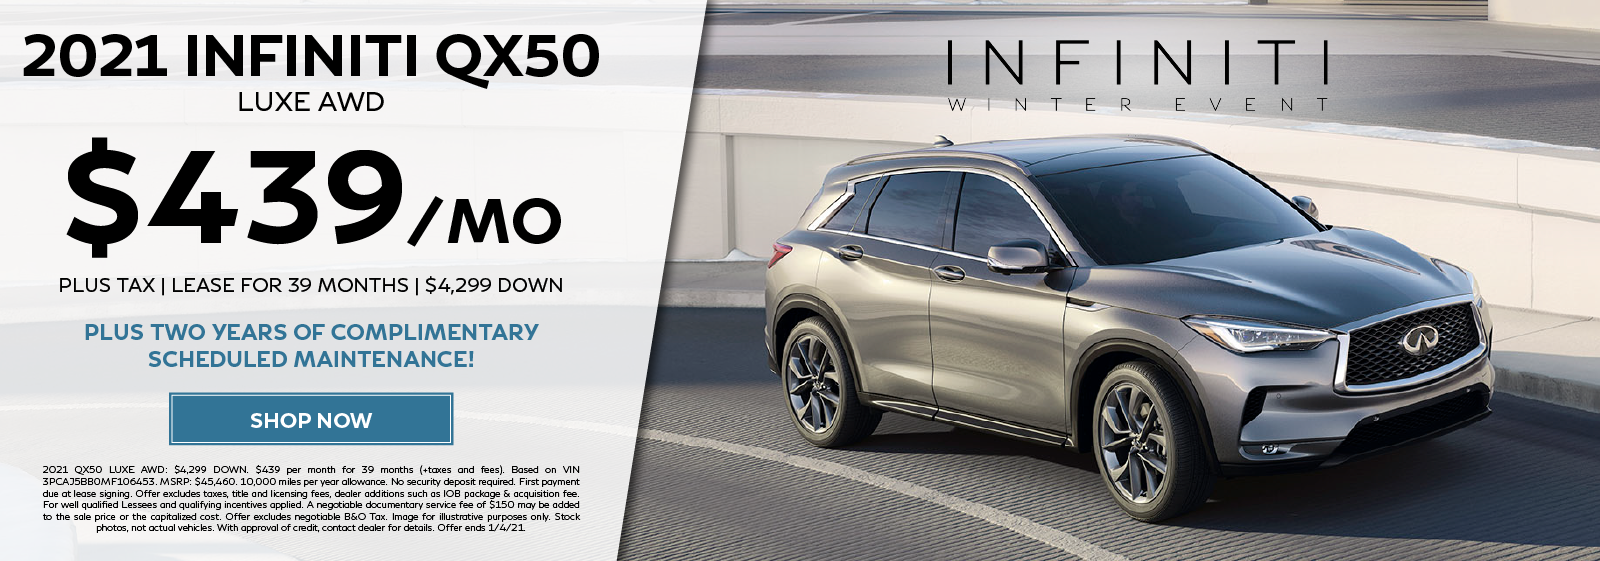 Lease a new 2021 QX50 LUXE AWD for $439 per month for 39 months complimentary scheduled maintenance. Click to shop now.